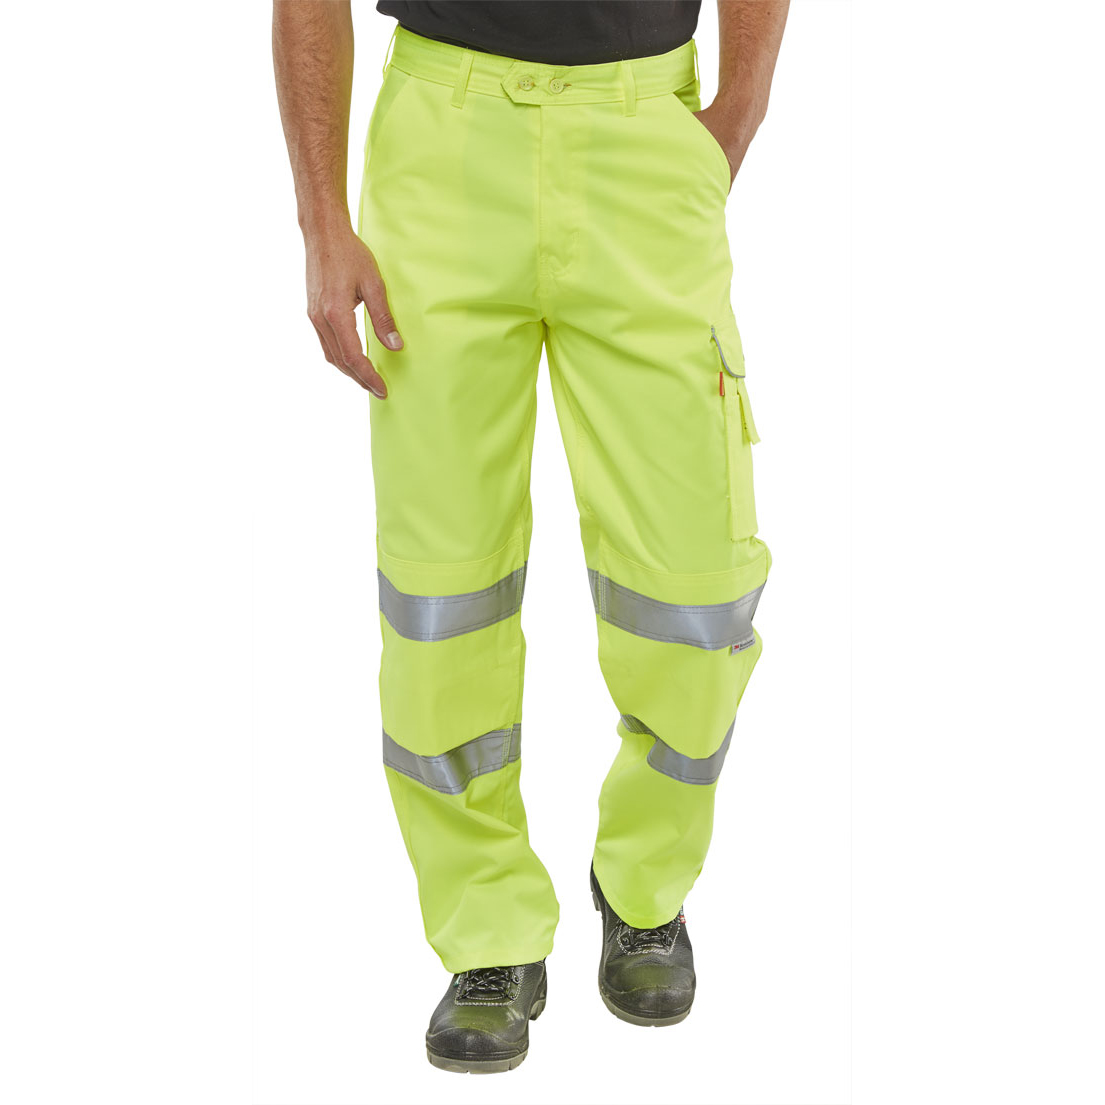 BSeen Trousers Polycotton Hi-Vis EN471 Saturn Yellow 38 Ref PCTENSY38 *Up to 3 Day Leadtime*